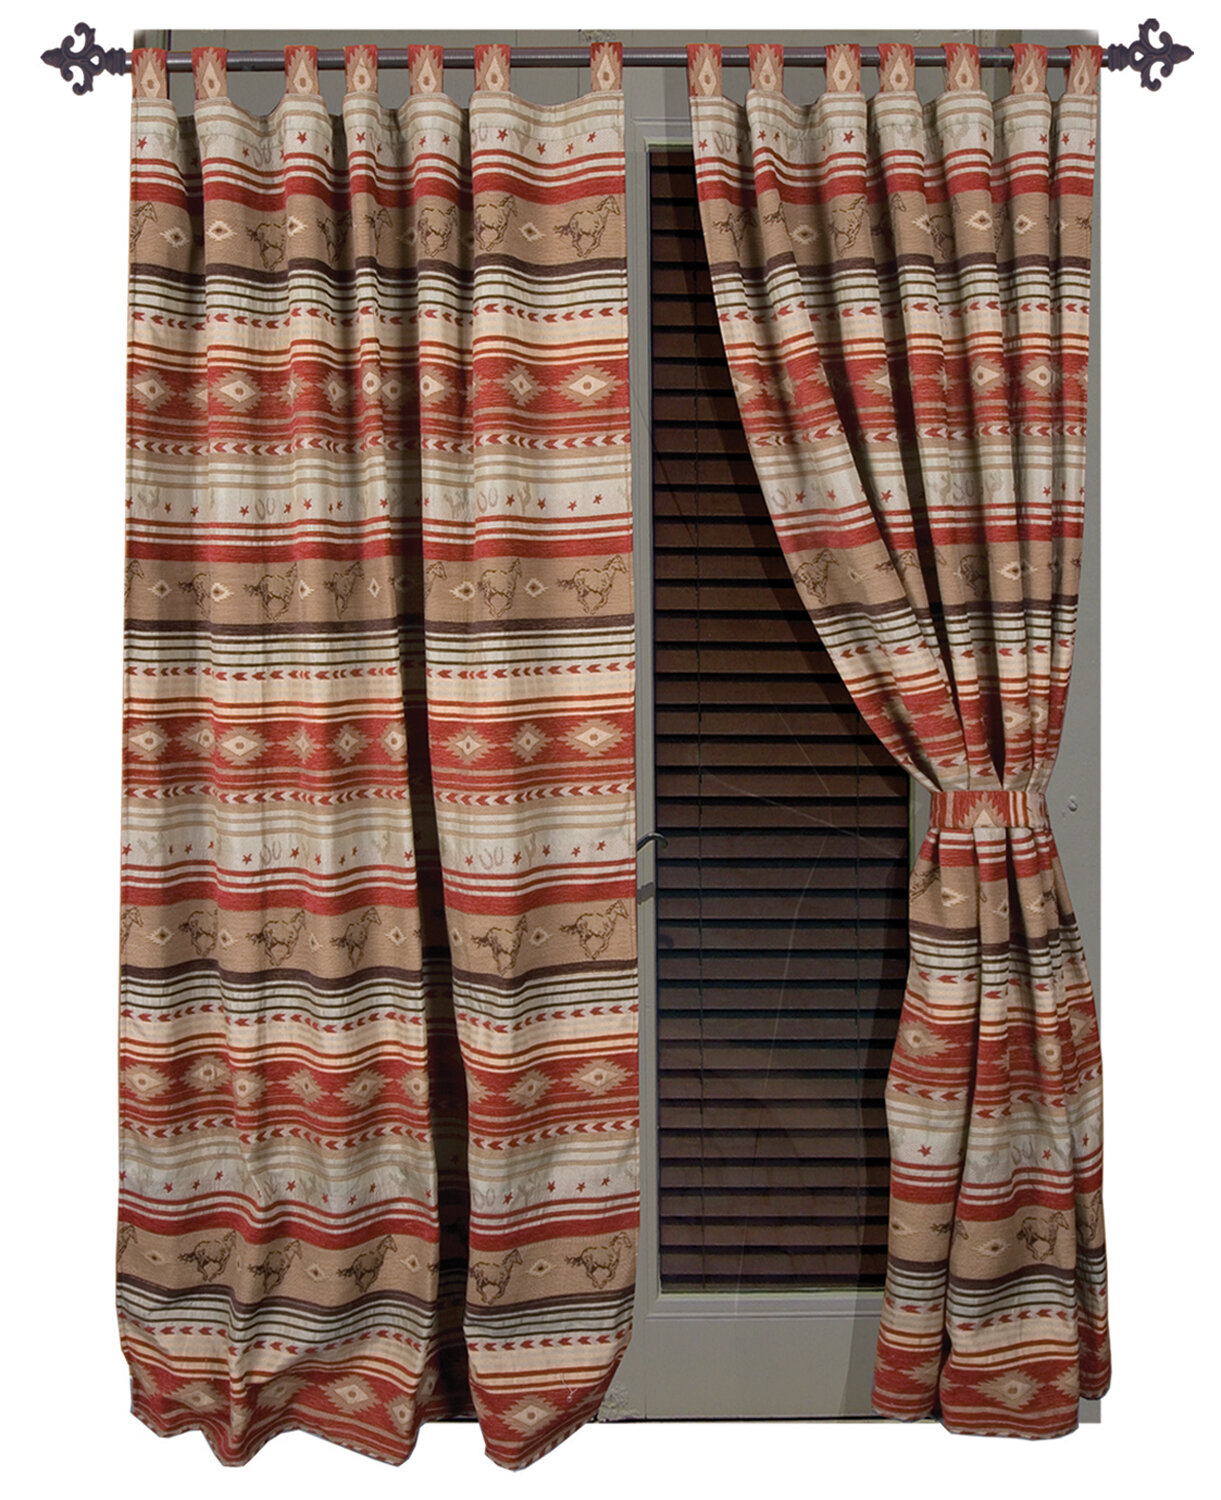 Suhel Striped Tab Top Curtain Panels For Complete Cottage Curtain Sets With An Antique And Aubergine Grapvine Print (View 16 of 20)